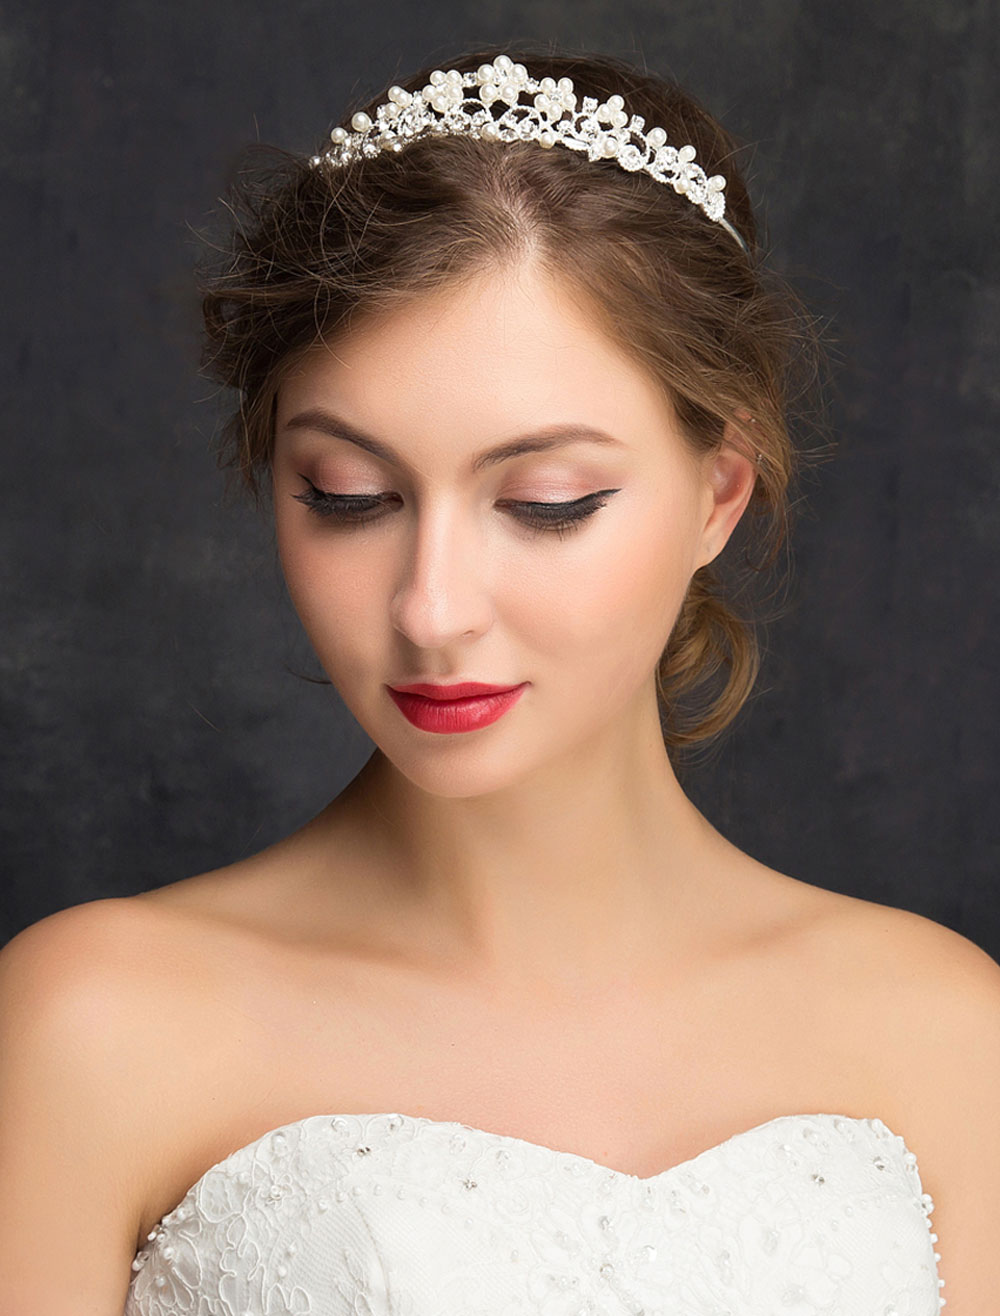 Buy Wedding Hair Headband Silver Imitation Pearls Rhinestones Alloy Bridal Hair Accessories for $14.99 in Milanoo store